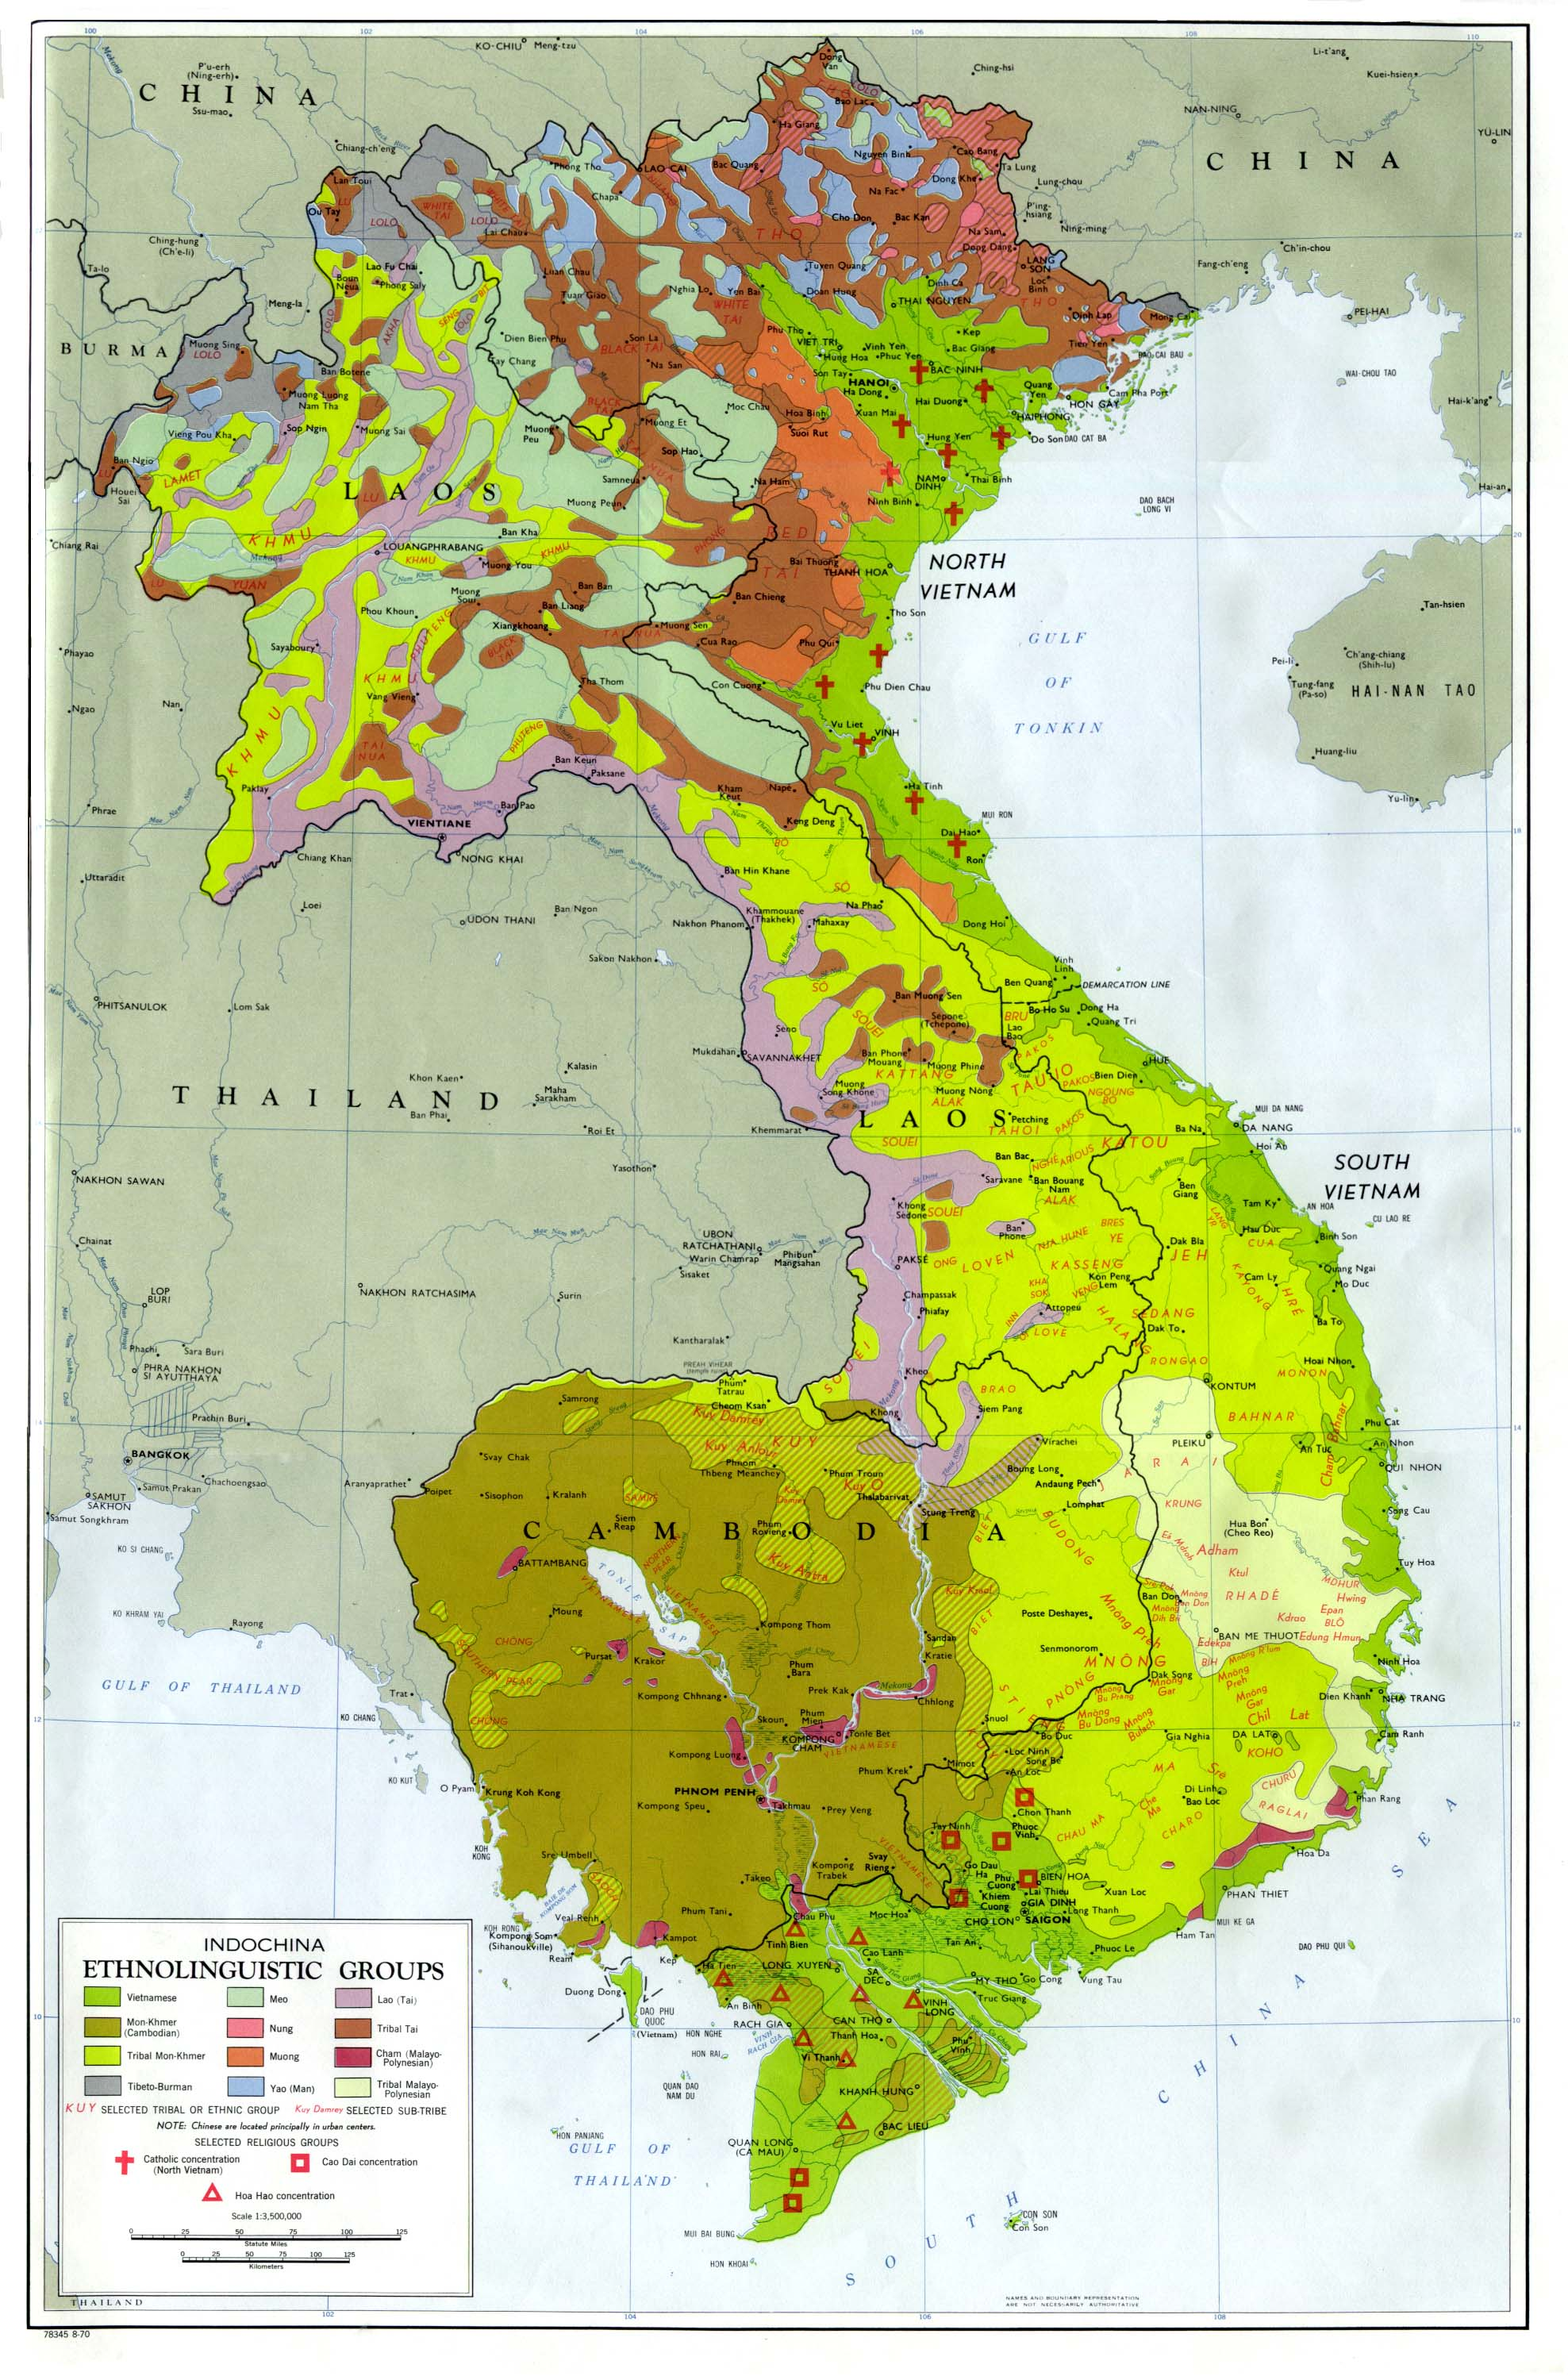 Map of Indochina Ethnolinguistic Groups